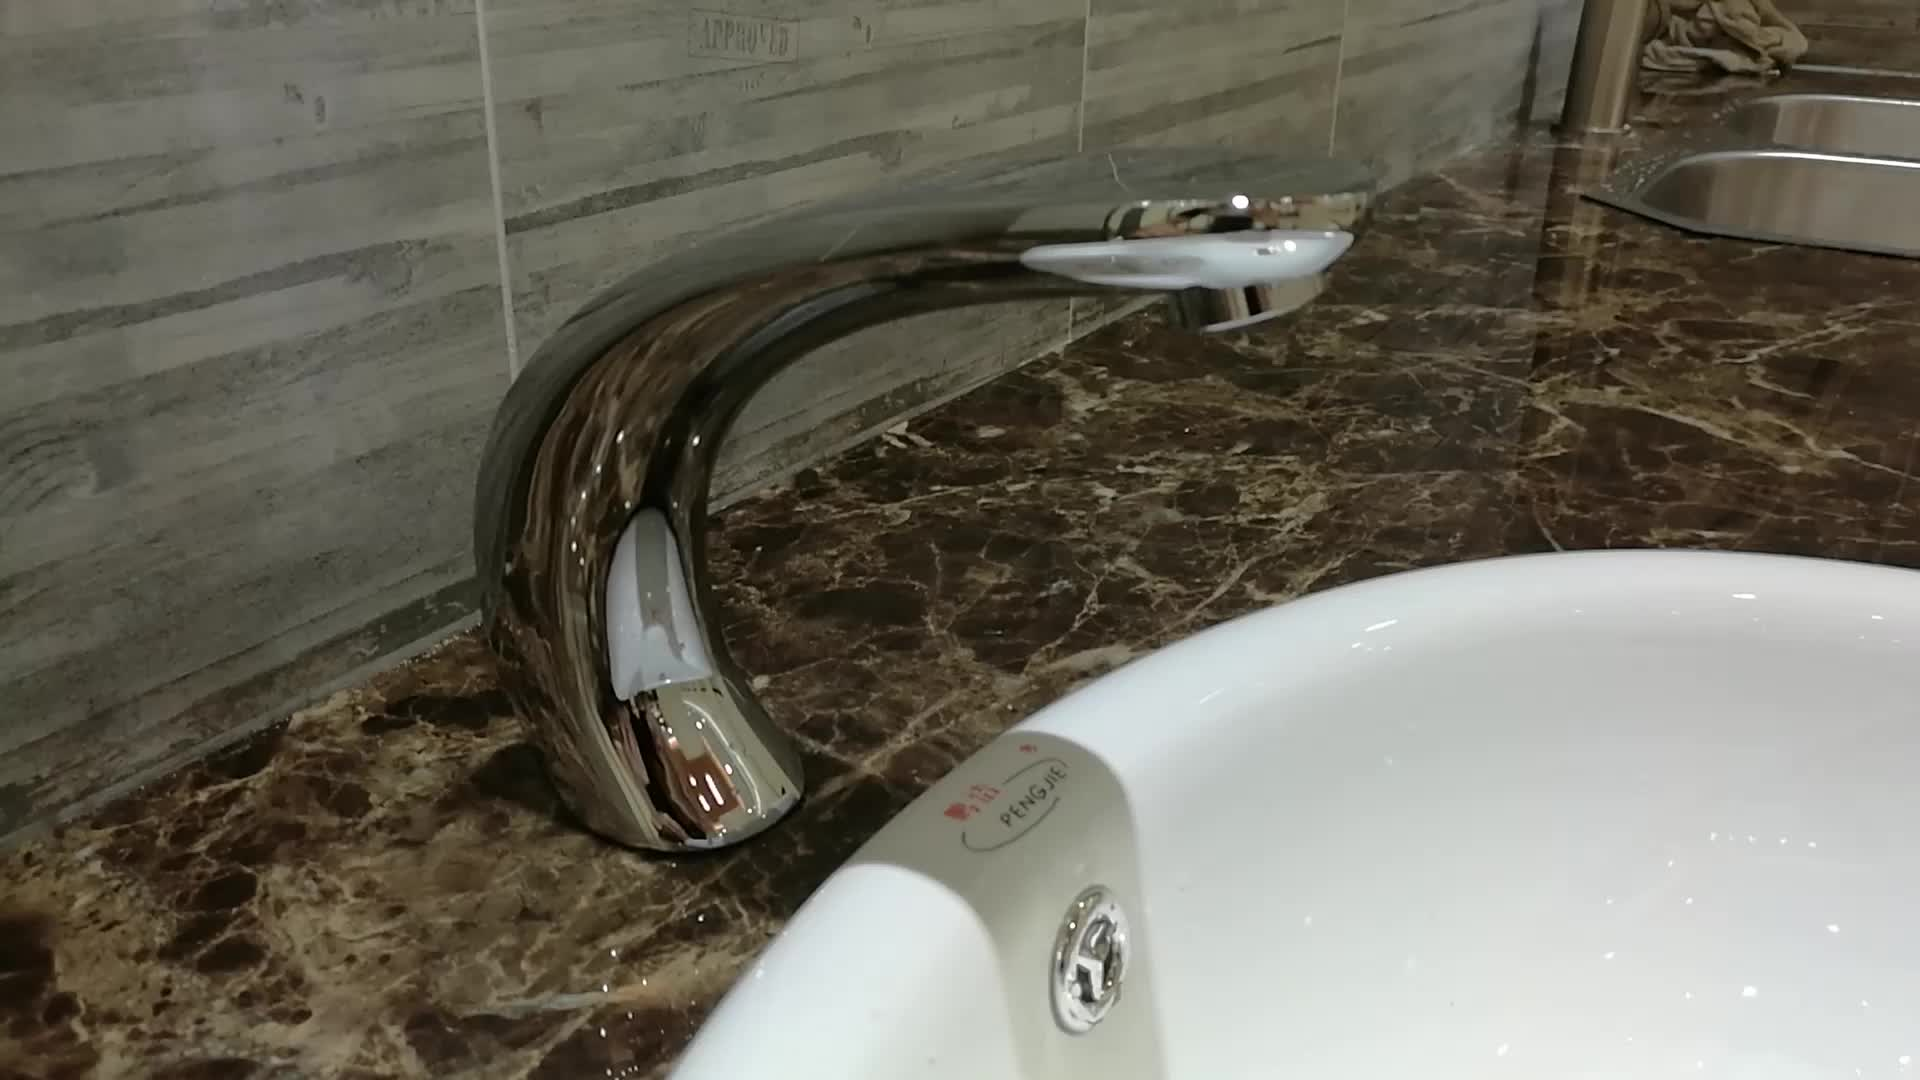 Electronic Touch Automatic Sensor Bathroom Kitchen Water Faucet ...